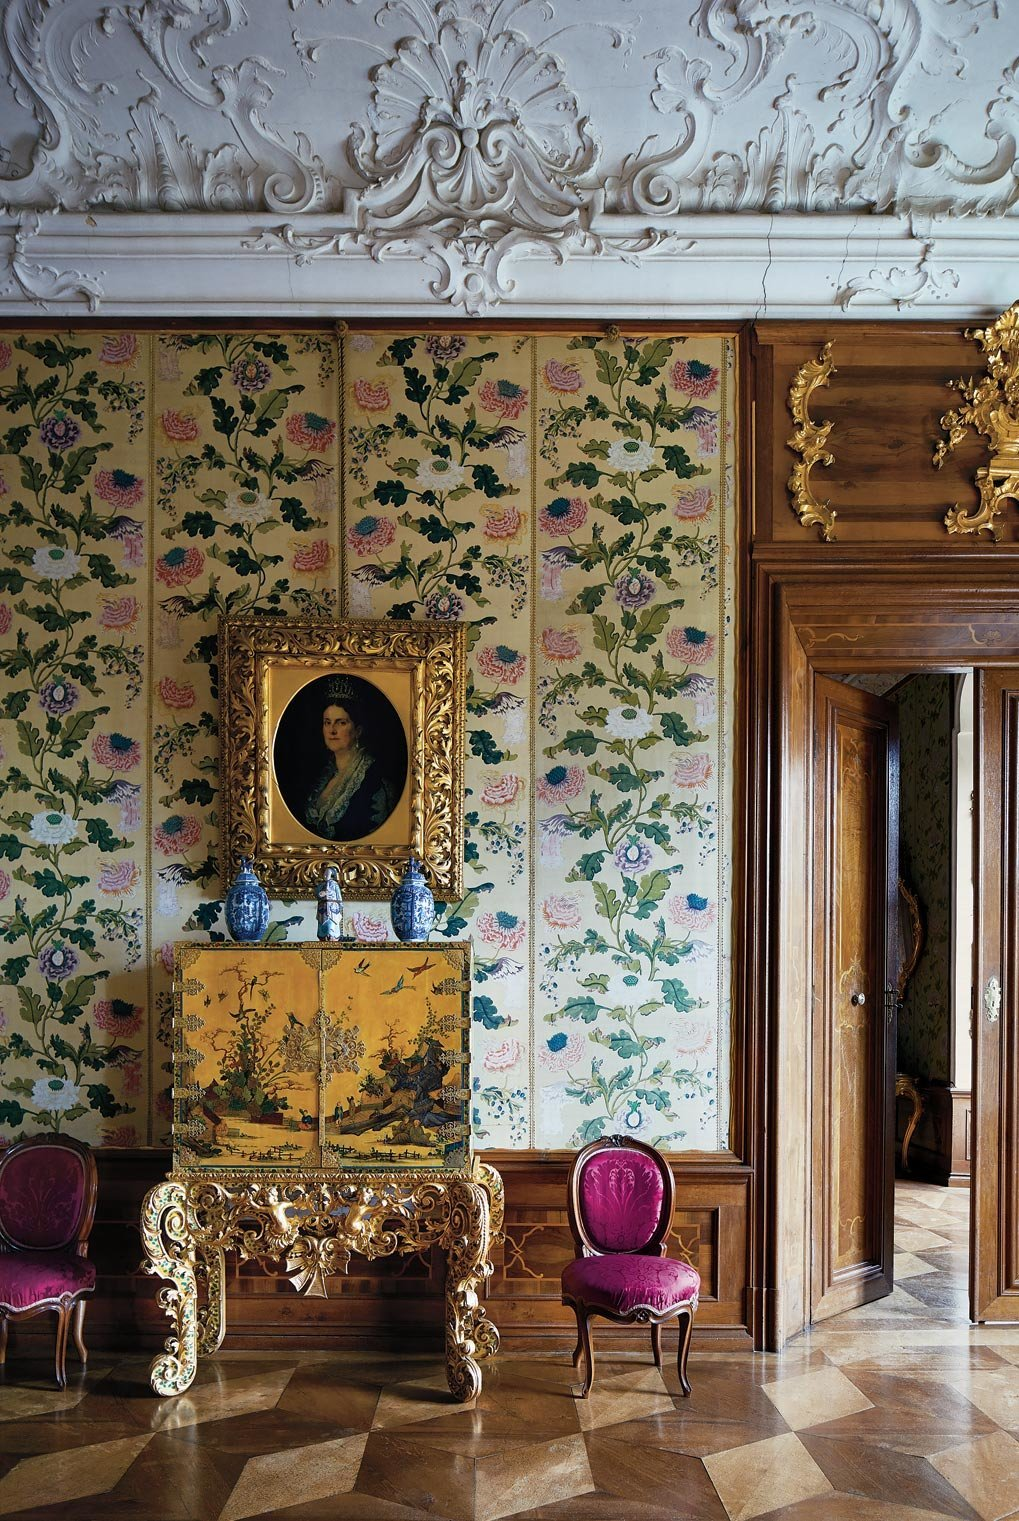 The little-used historical rooms of Schloss Hollenegg and their contents are remarkably well preserved, from the Baroque plaster detail on the ceiling to the 18th-century Chinese panels and vases, to the 19th-century Austrian chairs and the portrait of Princess Henriette von Liechtenstein New York Time T Magazine Design Issue -  photography Simon Watson